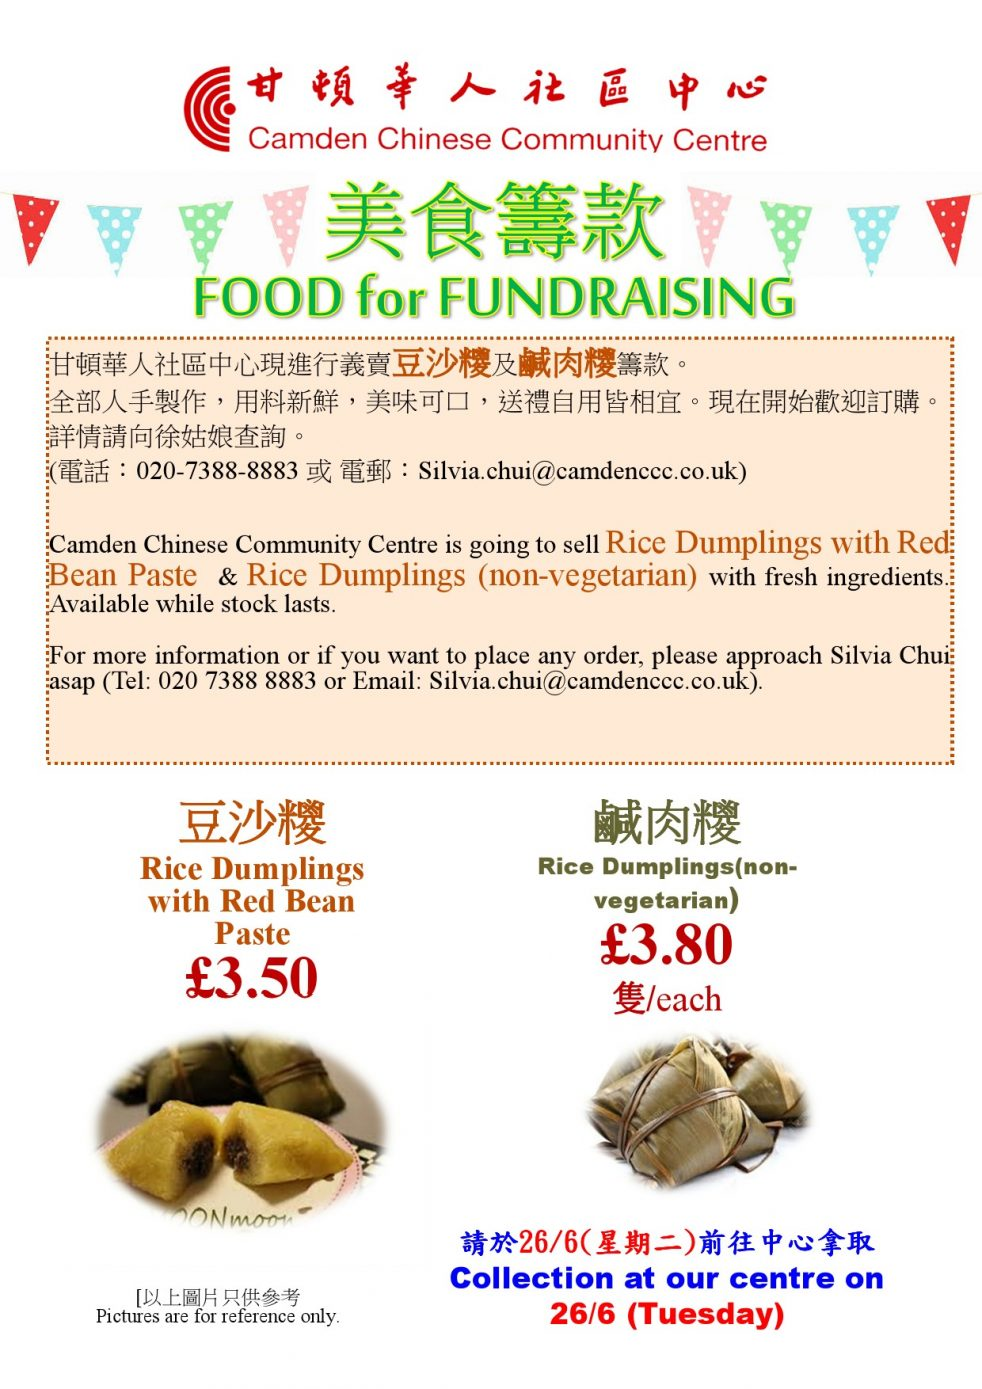 2018_JUNE_July_ Rice dumplings&RedBeanRiceDumplings fund-raising-1